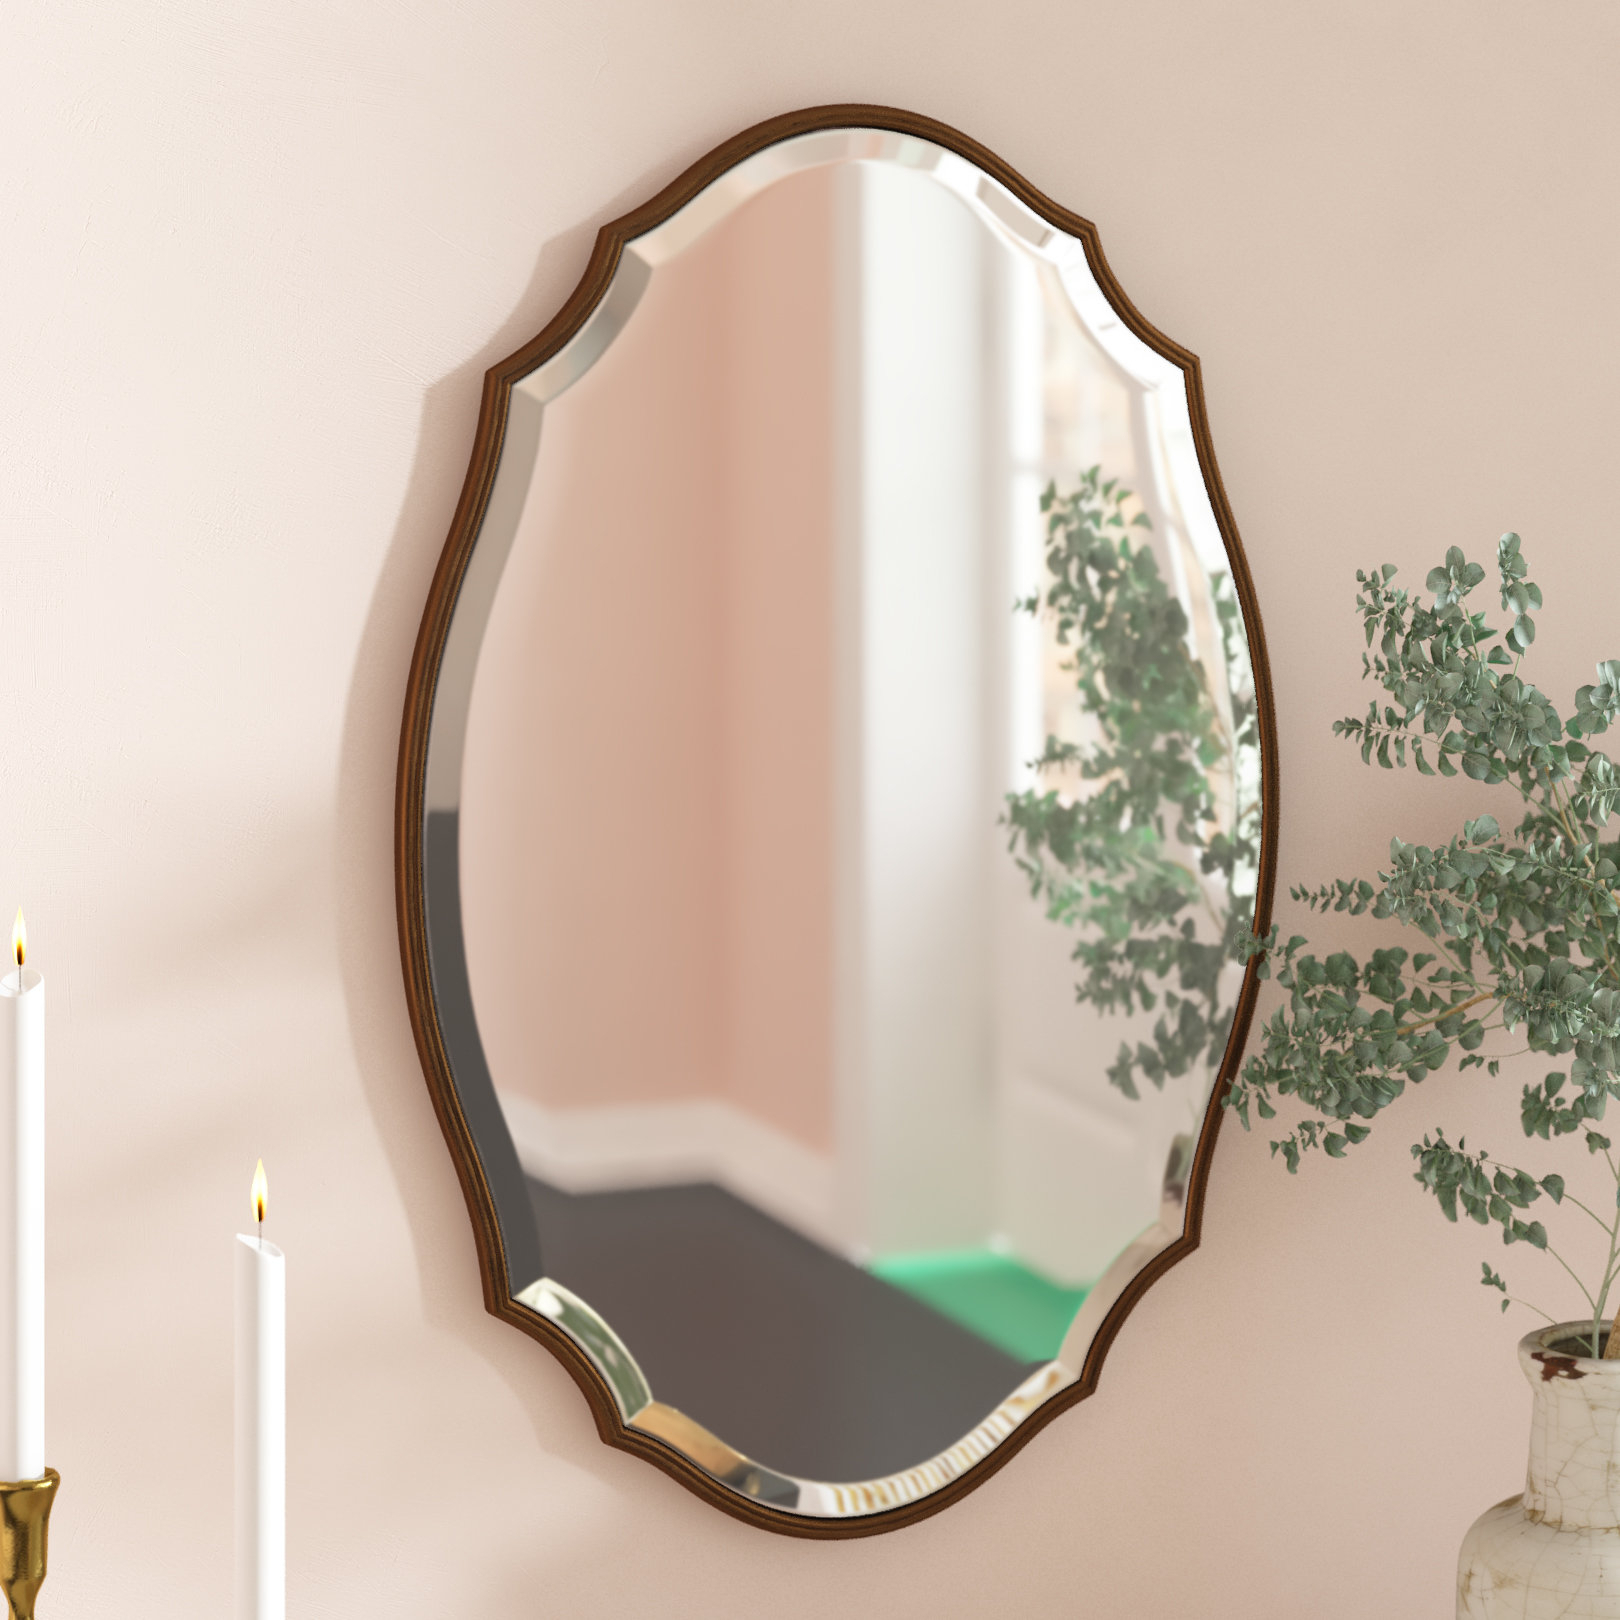 Rosdorf Park Modern & Contemporary Beveled Accent Mirror Pertaining To Guidinha Modern & Contemporary Accent Mirrors (View 26 of 30)